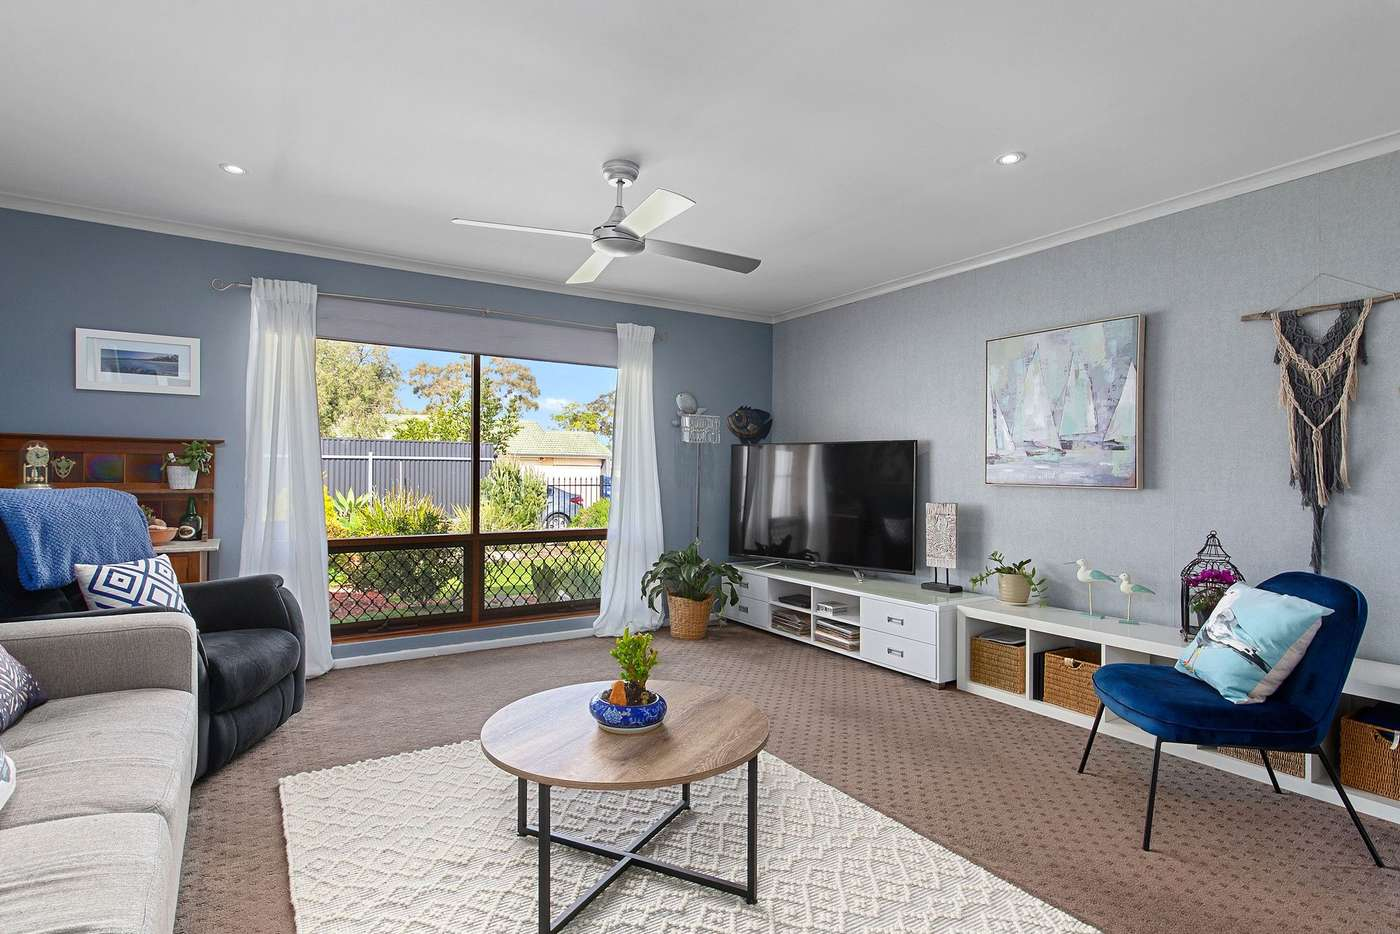 Fifth view of Homely house listing, 17 Wattle Street, Morphett Vale SA 5162